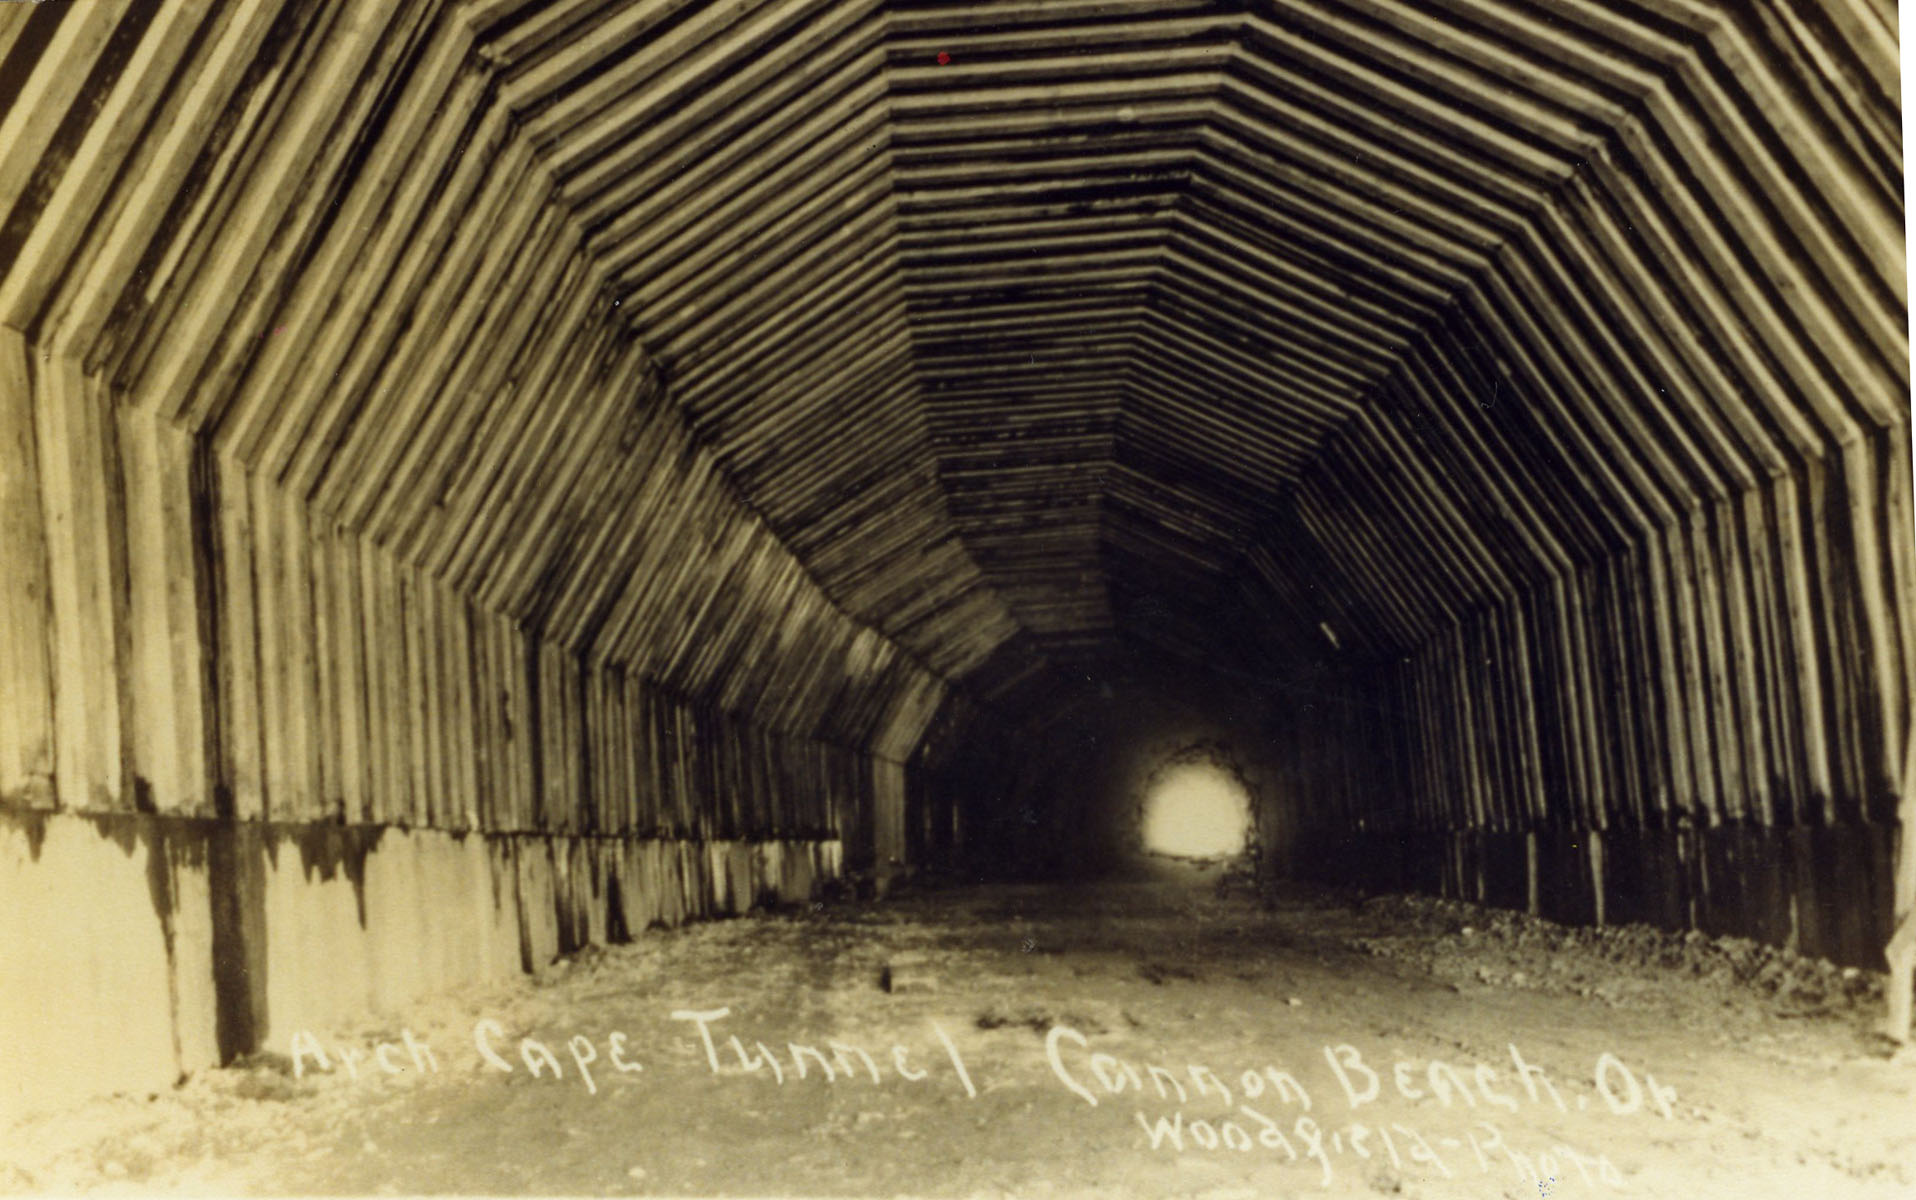 Here Is Another Photo By Frank Woodfield Of The Arch Cape Tunnel With Timber In Place